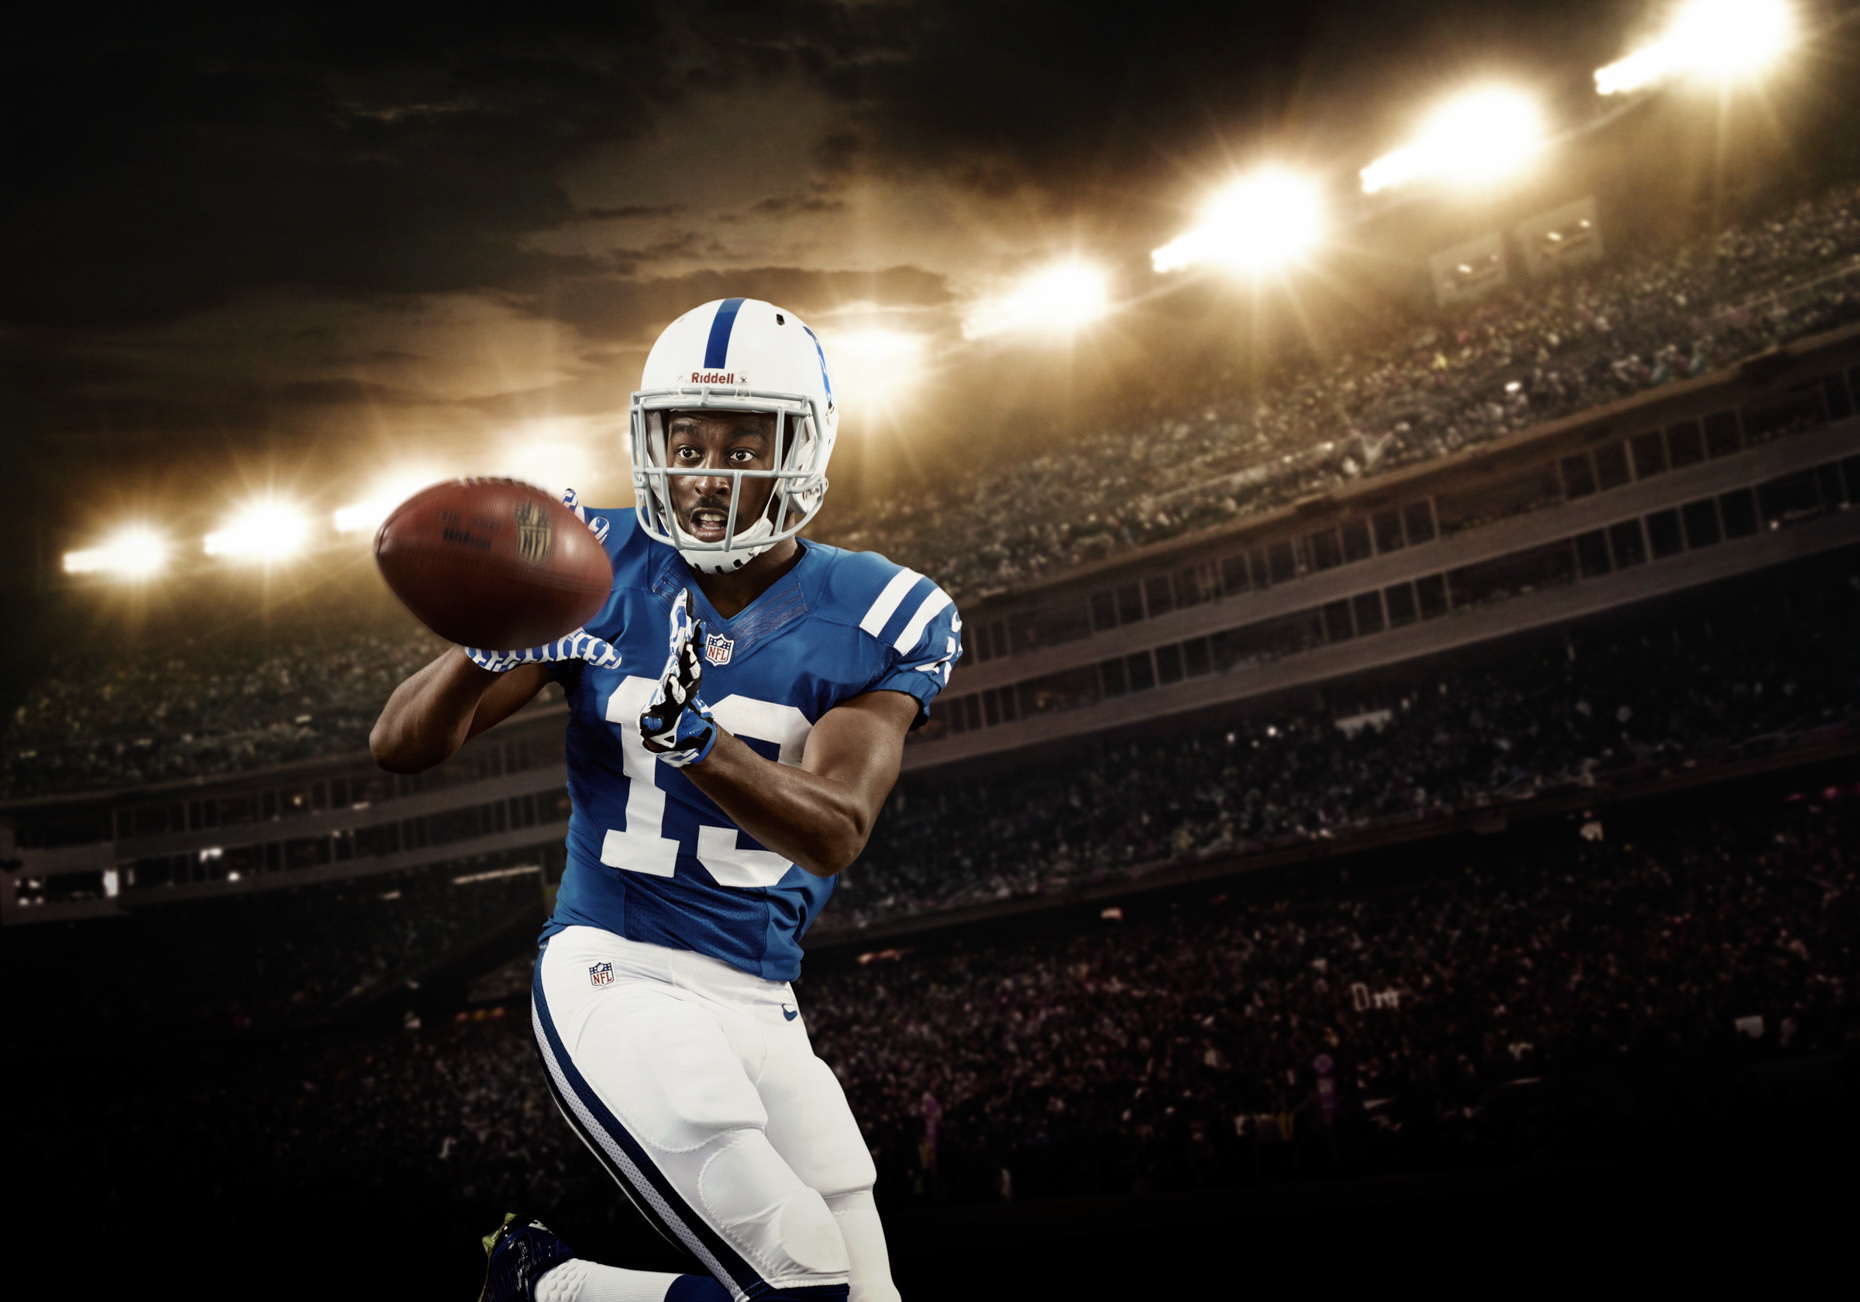 T. Y. Hilton is an American football wide receiver for the Indianapolis Colts of the National Football League.